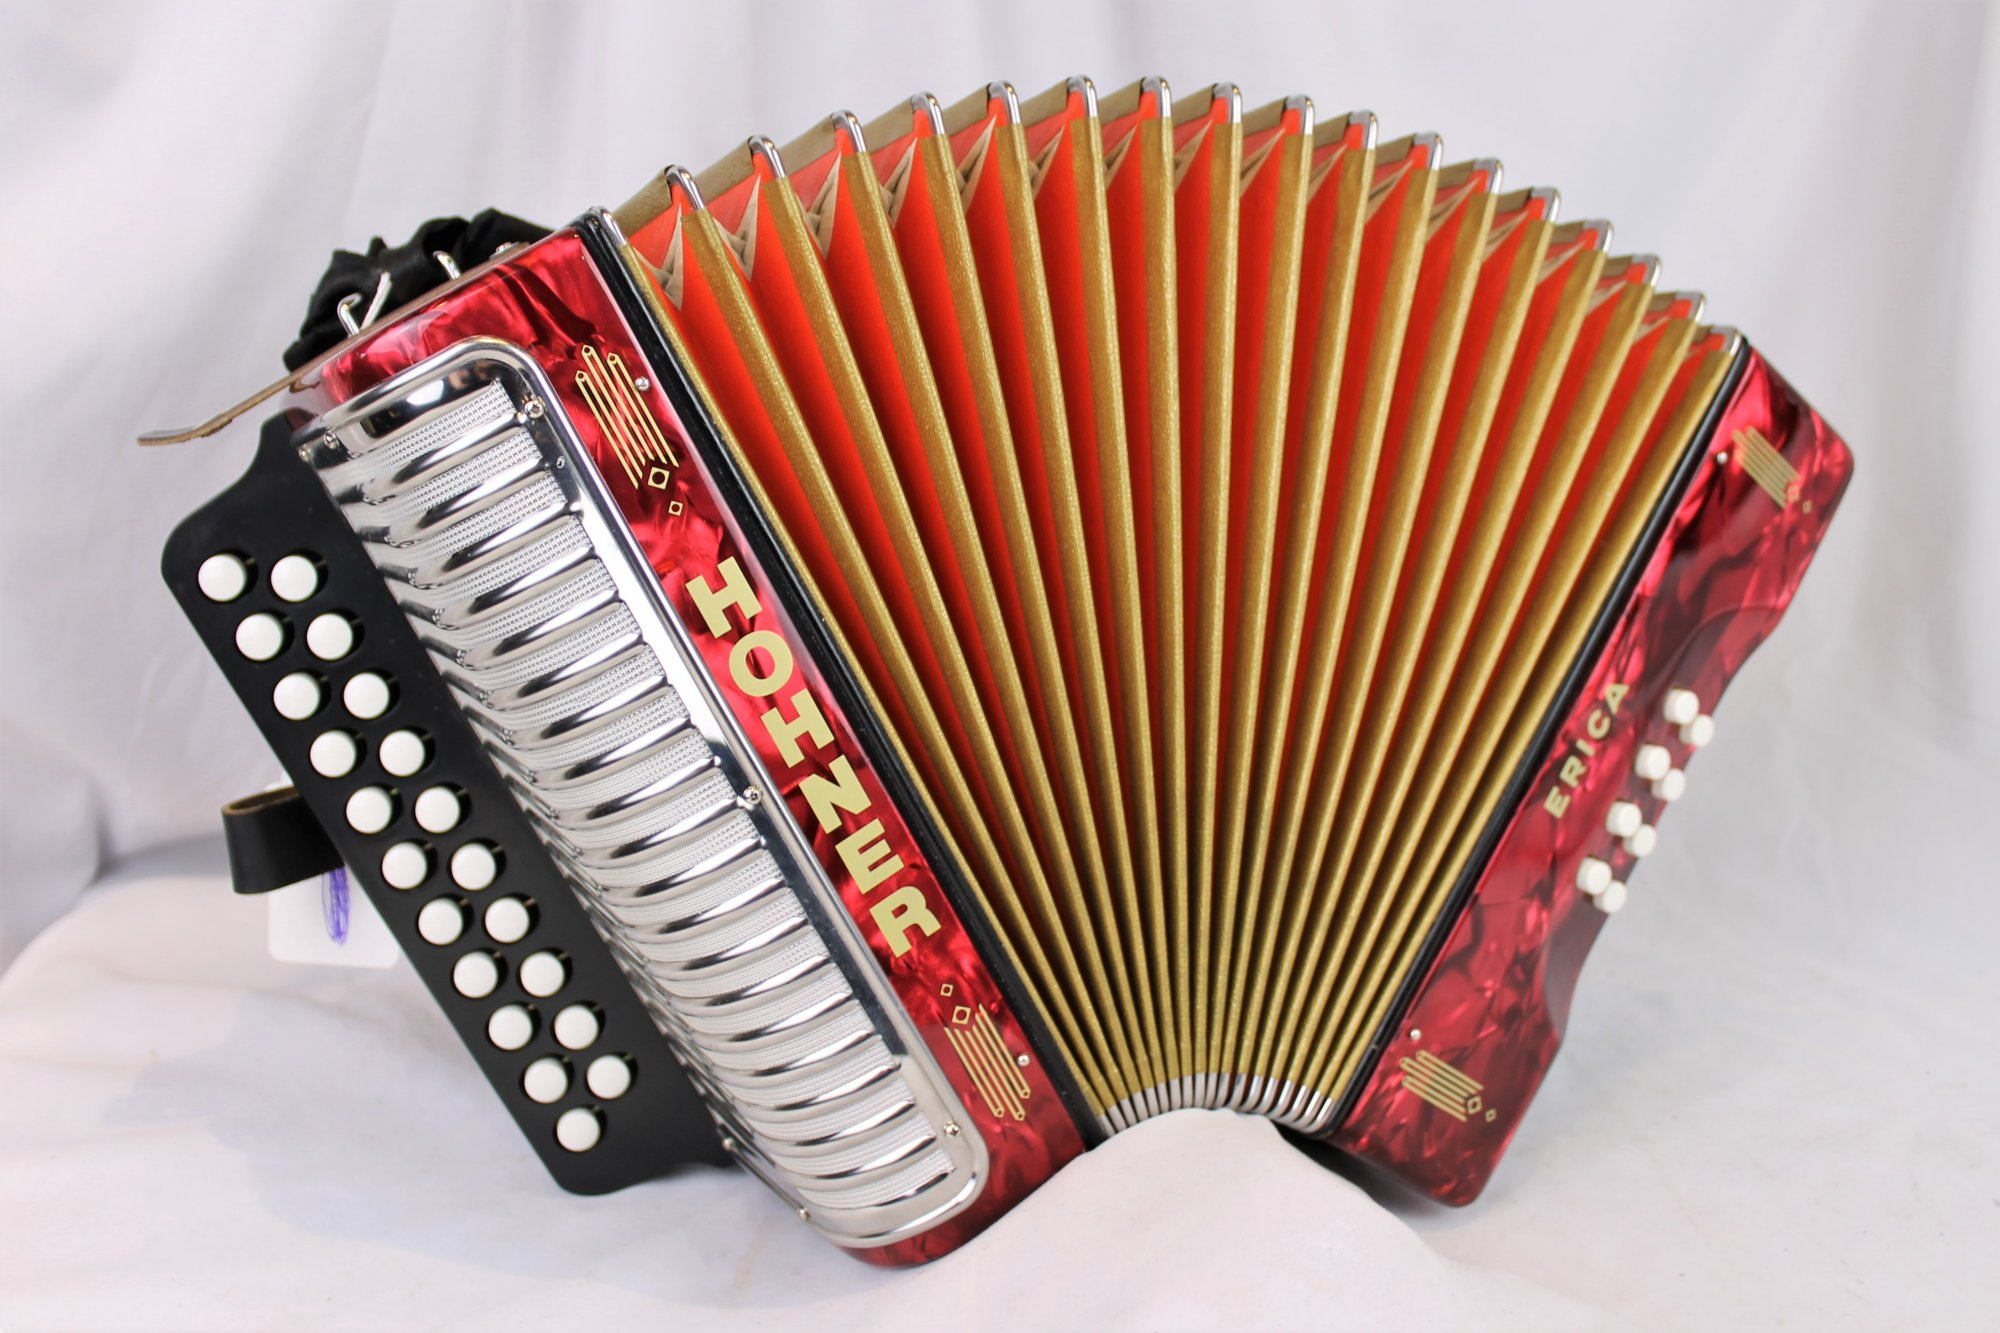 Like New Red Hohner Erica Diatonic Button Accordion AD MM 21 8